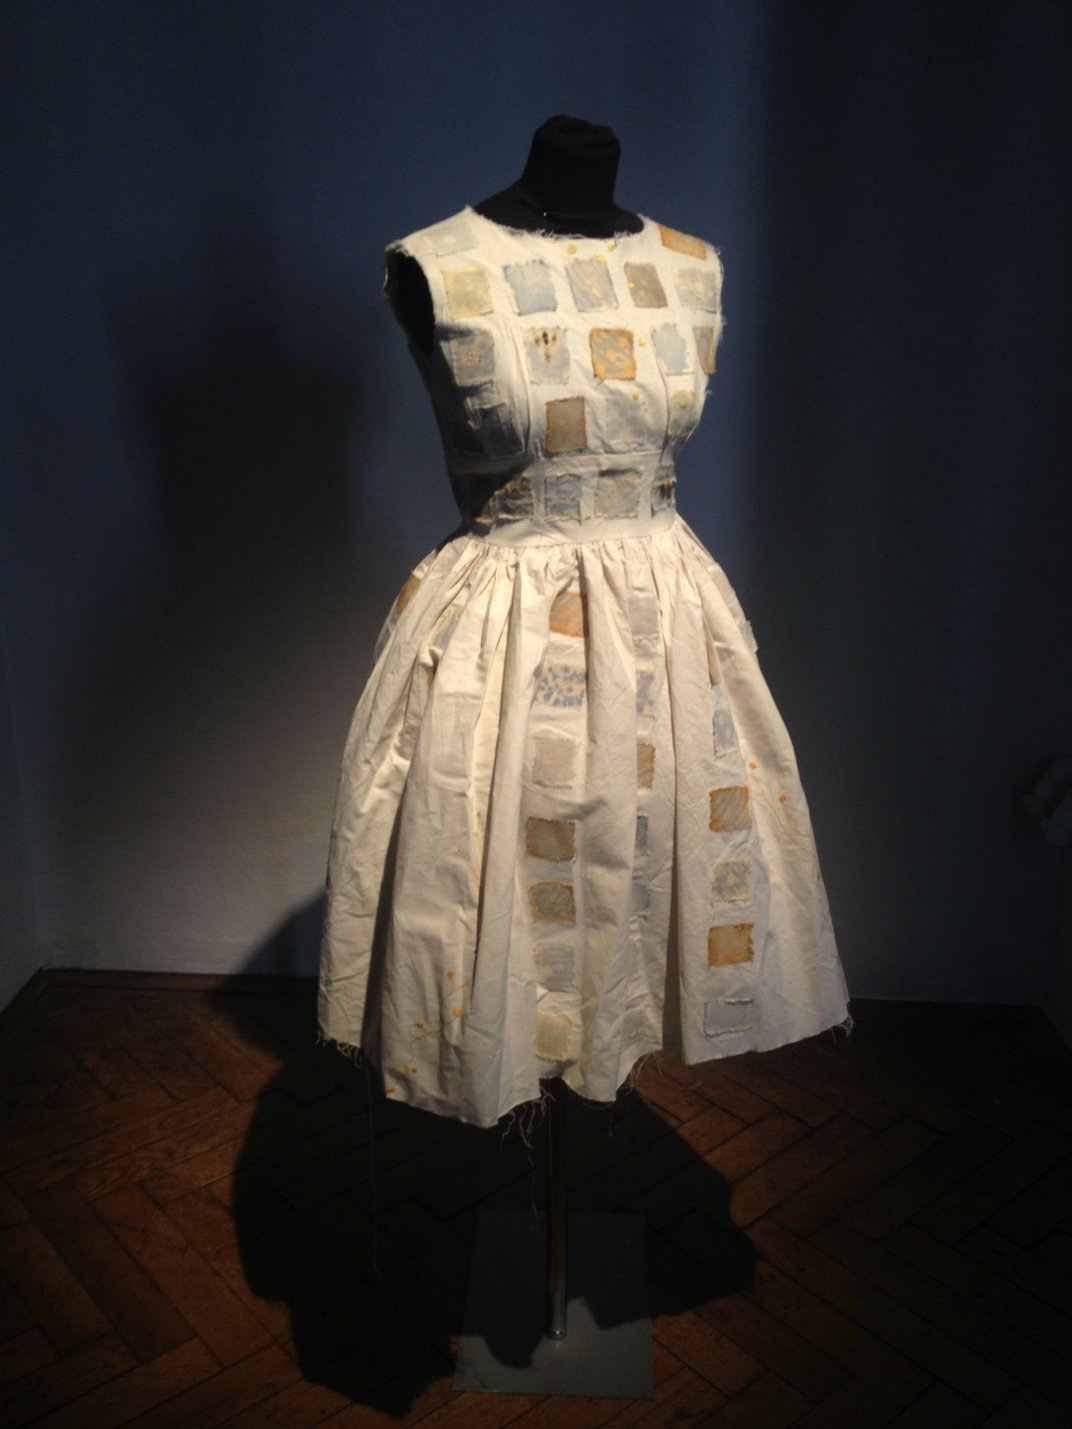 An Artist Dyes Clothes and Quilts With Tuberculosis and Staph Bacteria